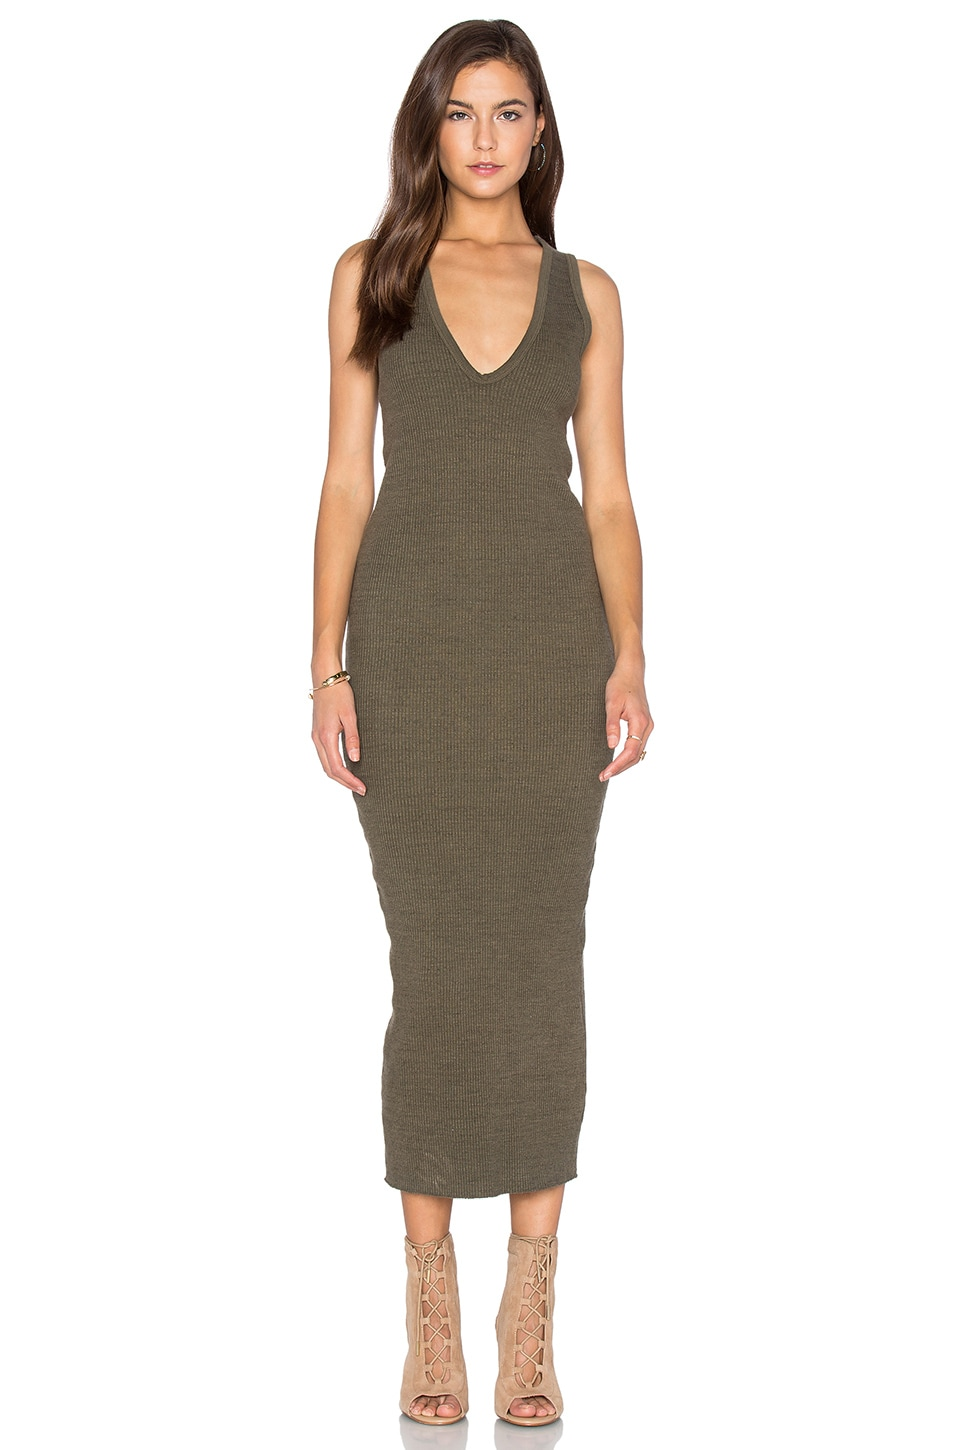 James Perse Heavy Rib V-Neck Dress in Marjoram